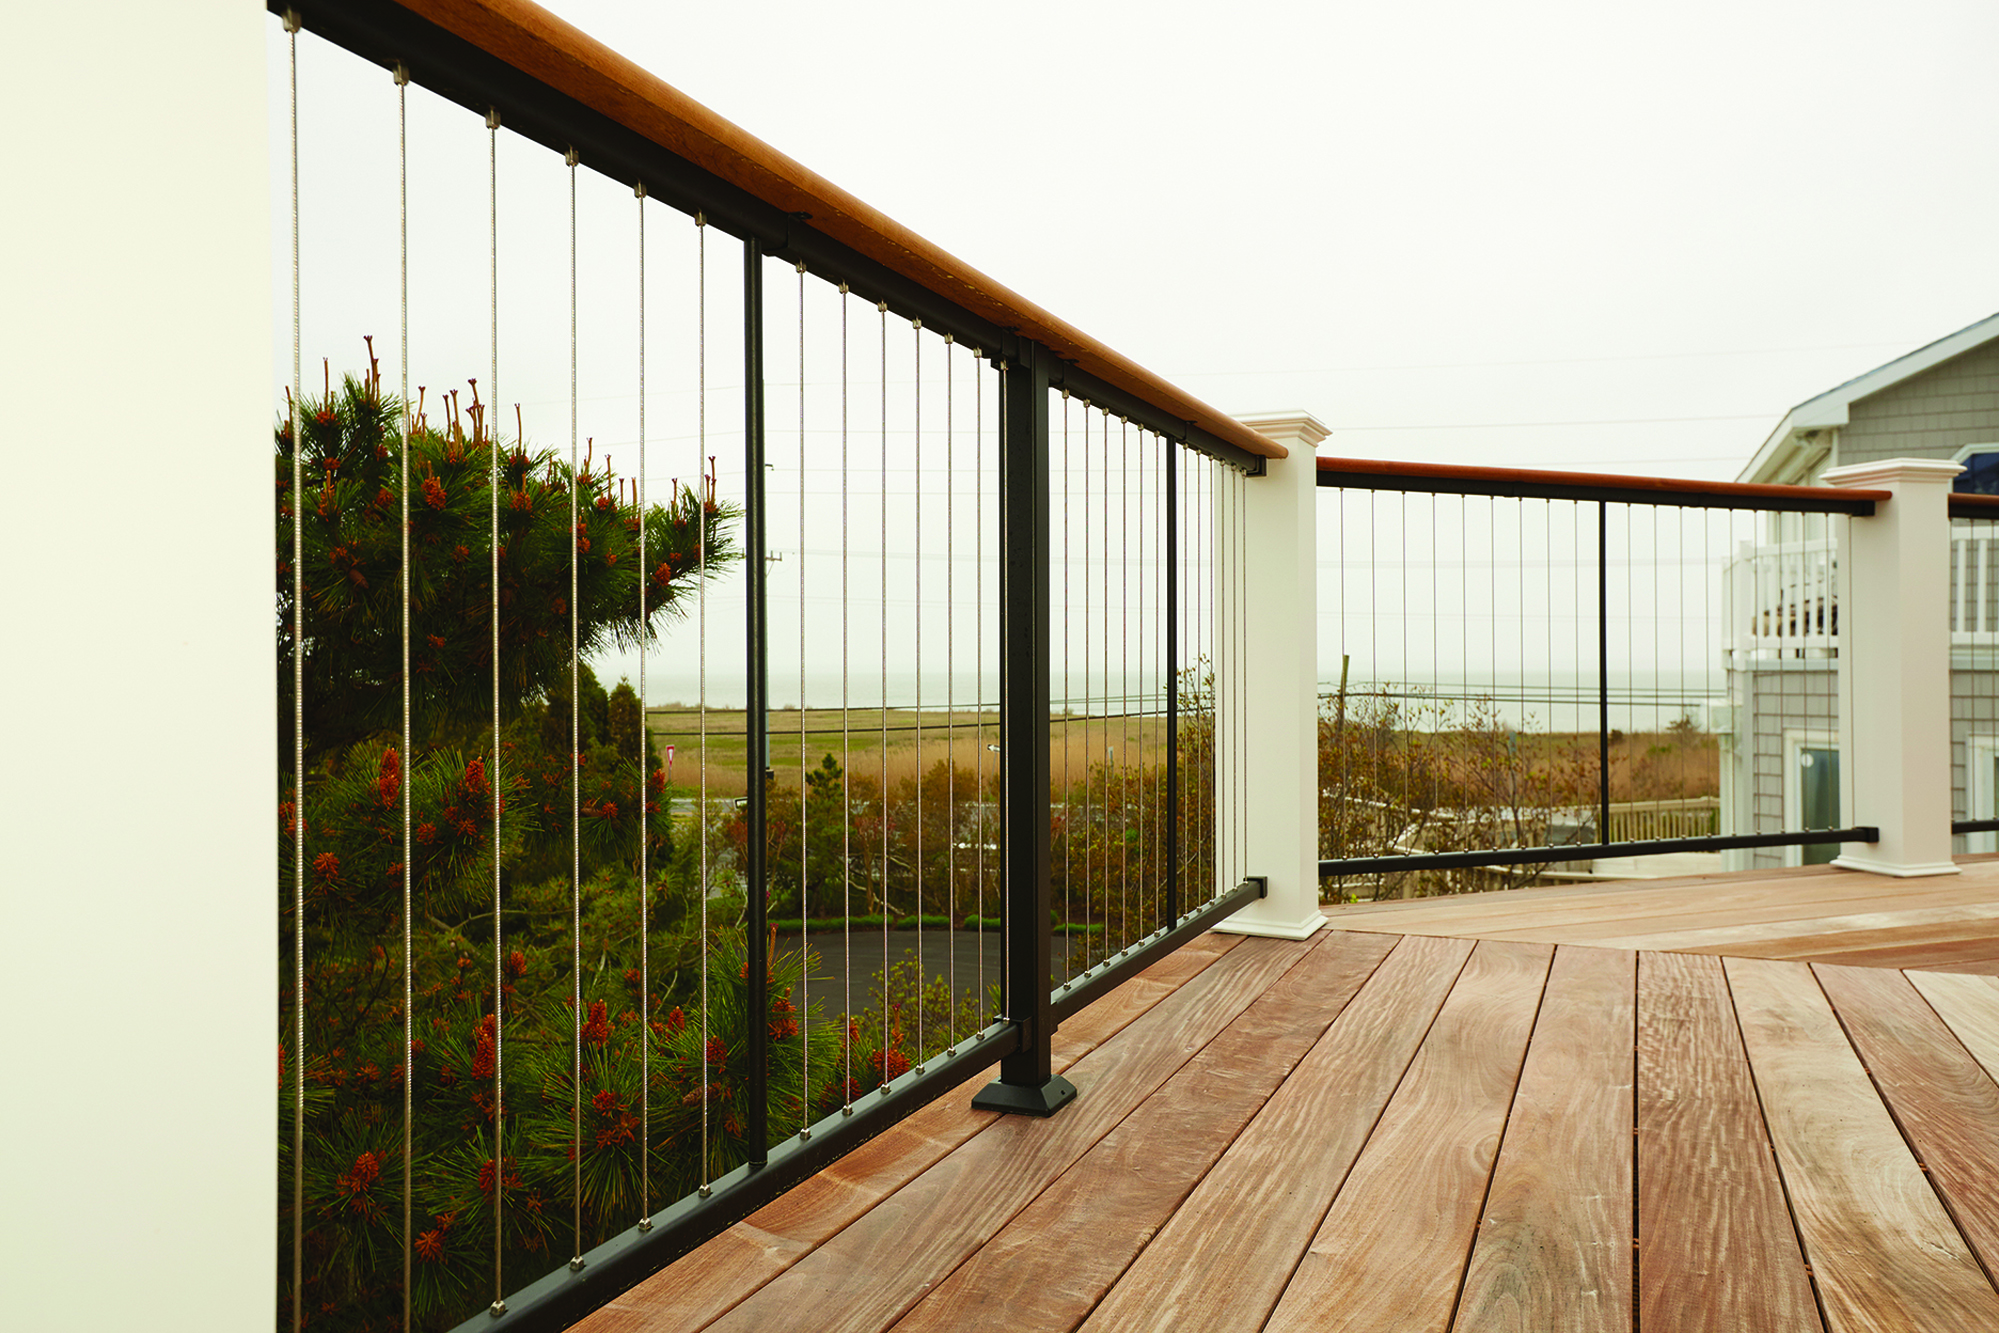 vertical cable rail professional deck builder fencing. Black Bedroom Furniture Sets. Home Design Ideas